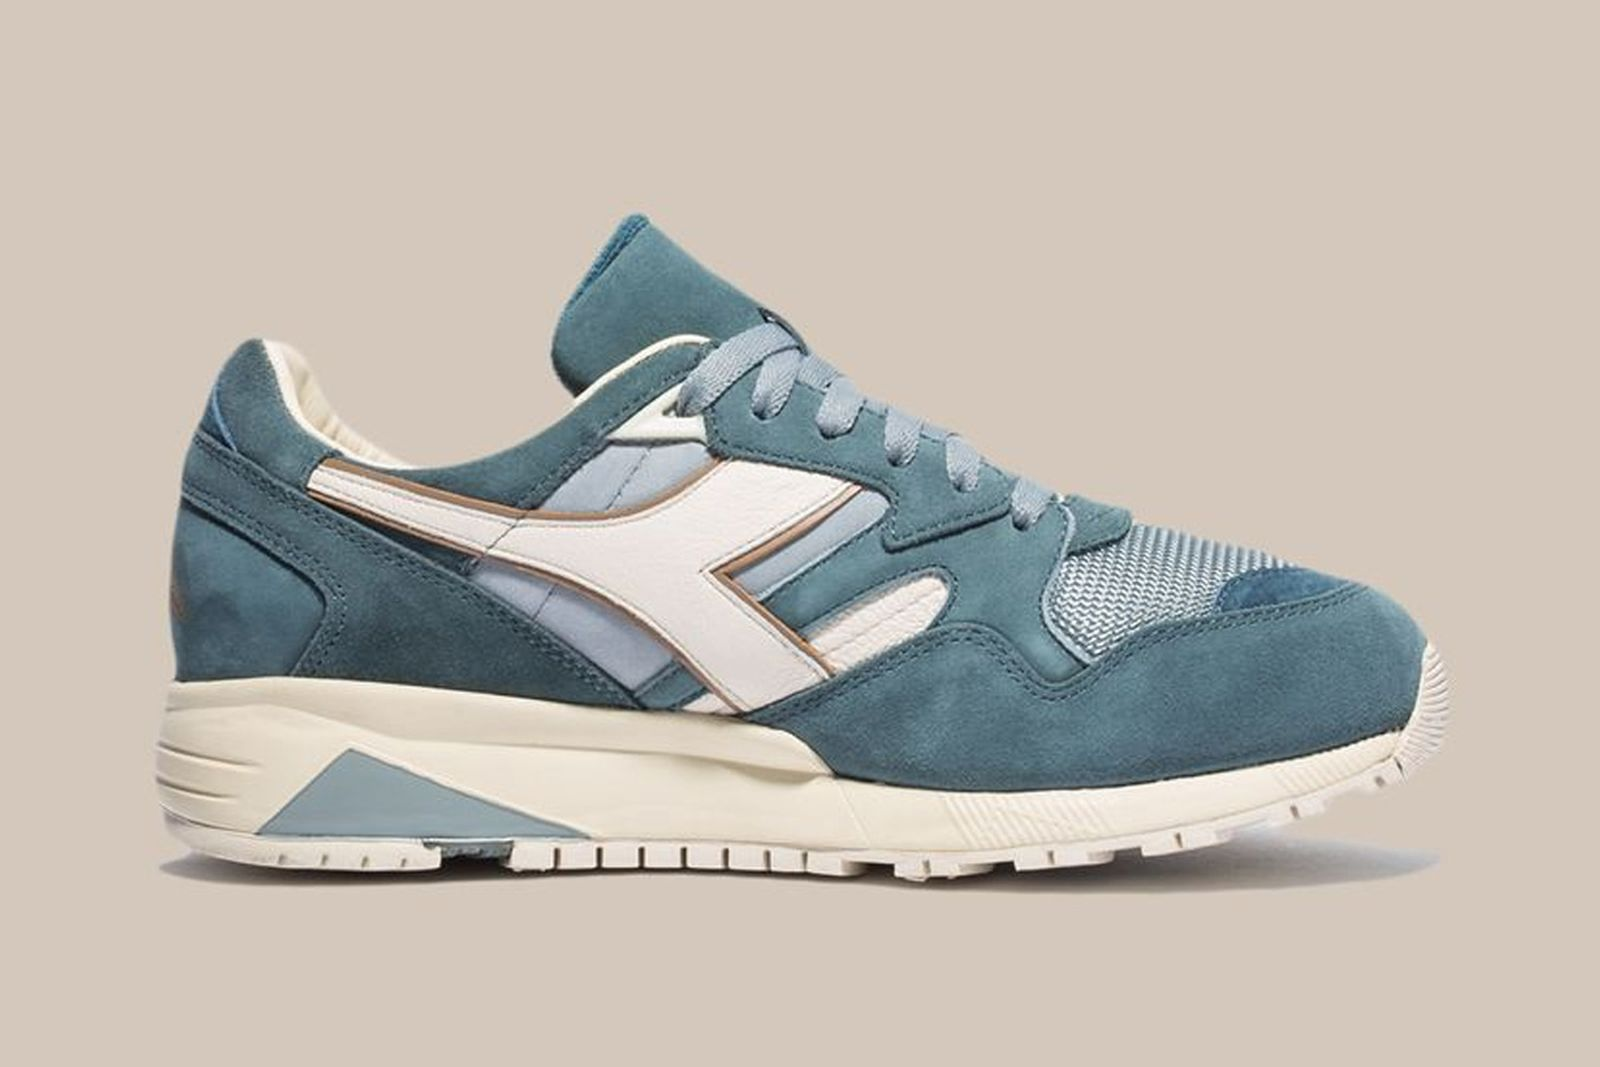 packer-diadora-n9002-molveno-release-date-price-product-04